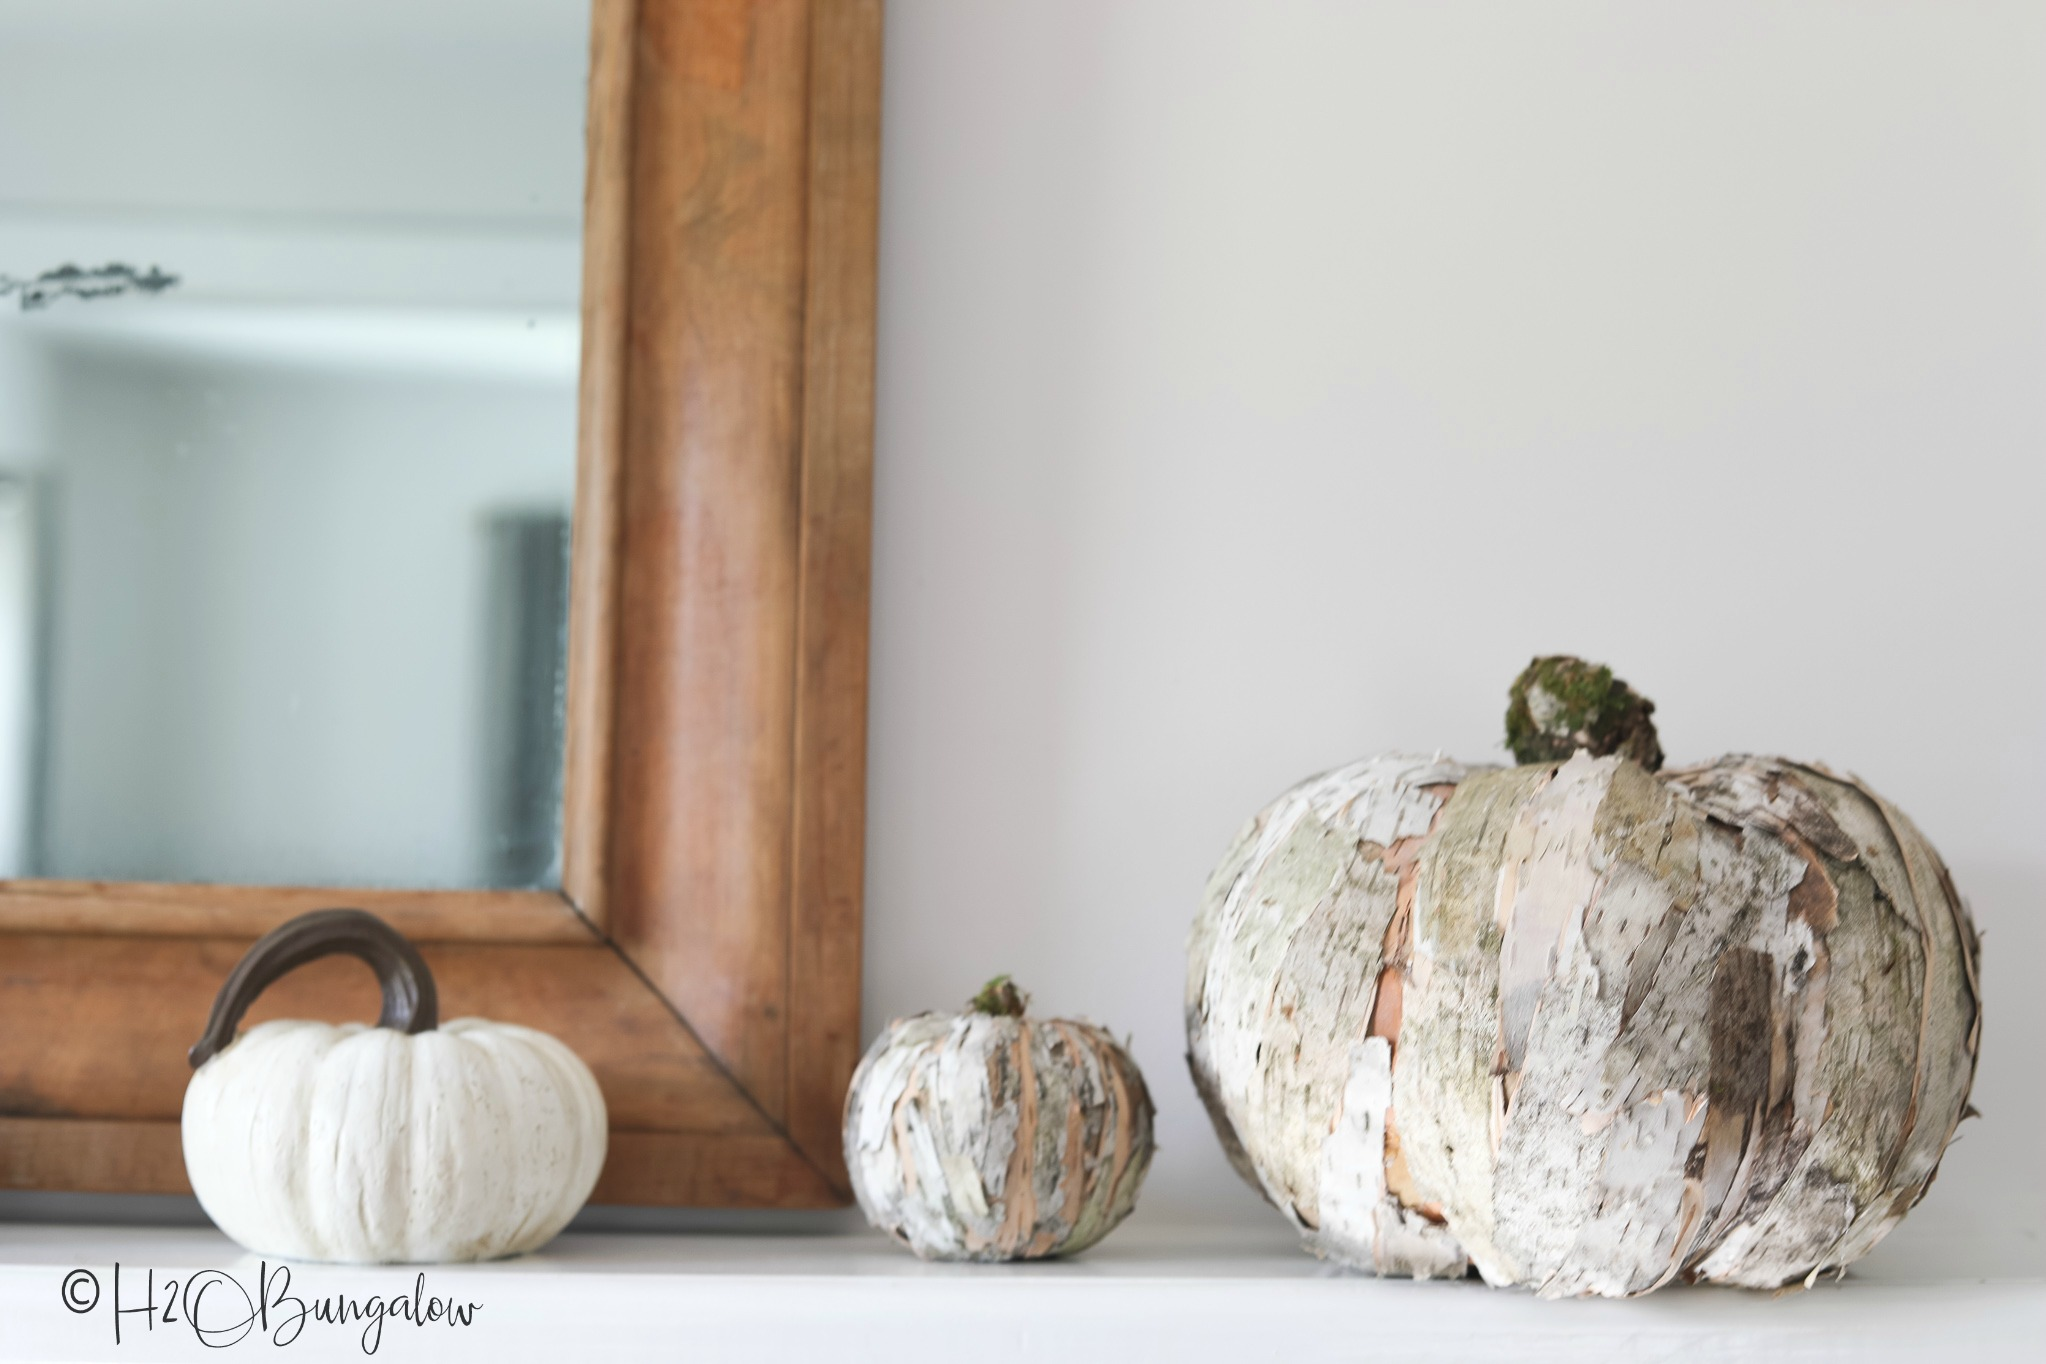 DIY birch bark pumpkin video and tutorial to make a trendy fall home decor item out of birch bark like these. I share how where to get birch bark and alternatives to using real bark too.